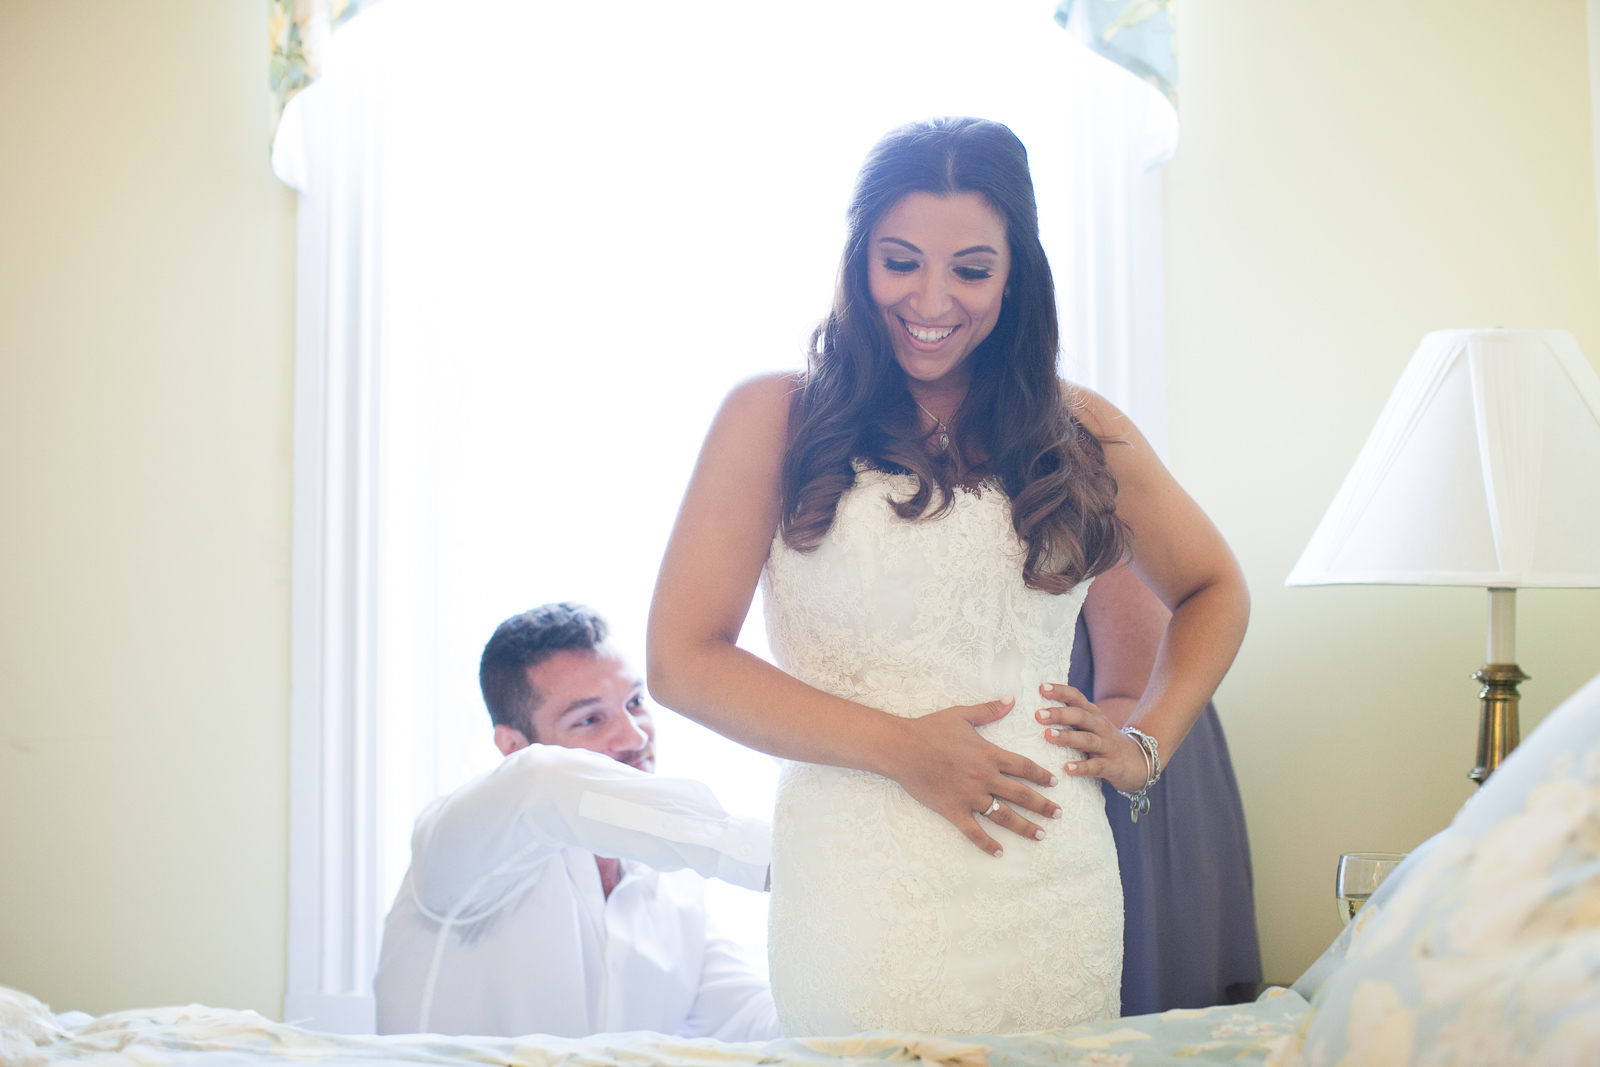 The bride putting on her dress before the ceremony